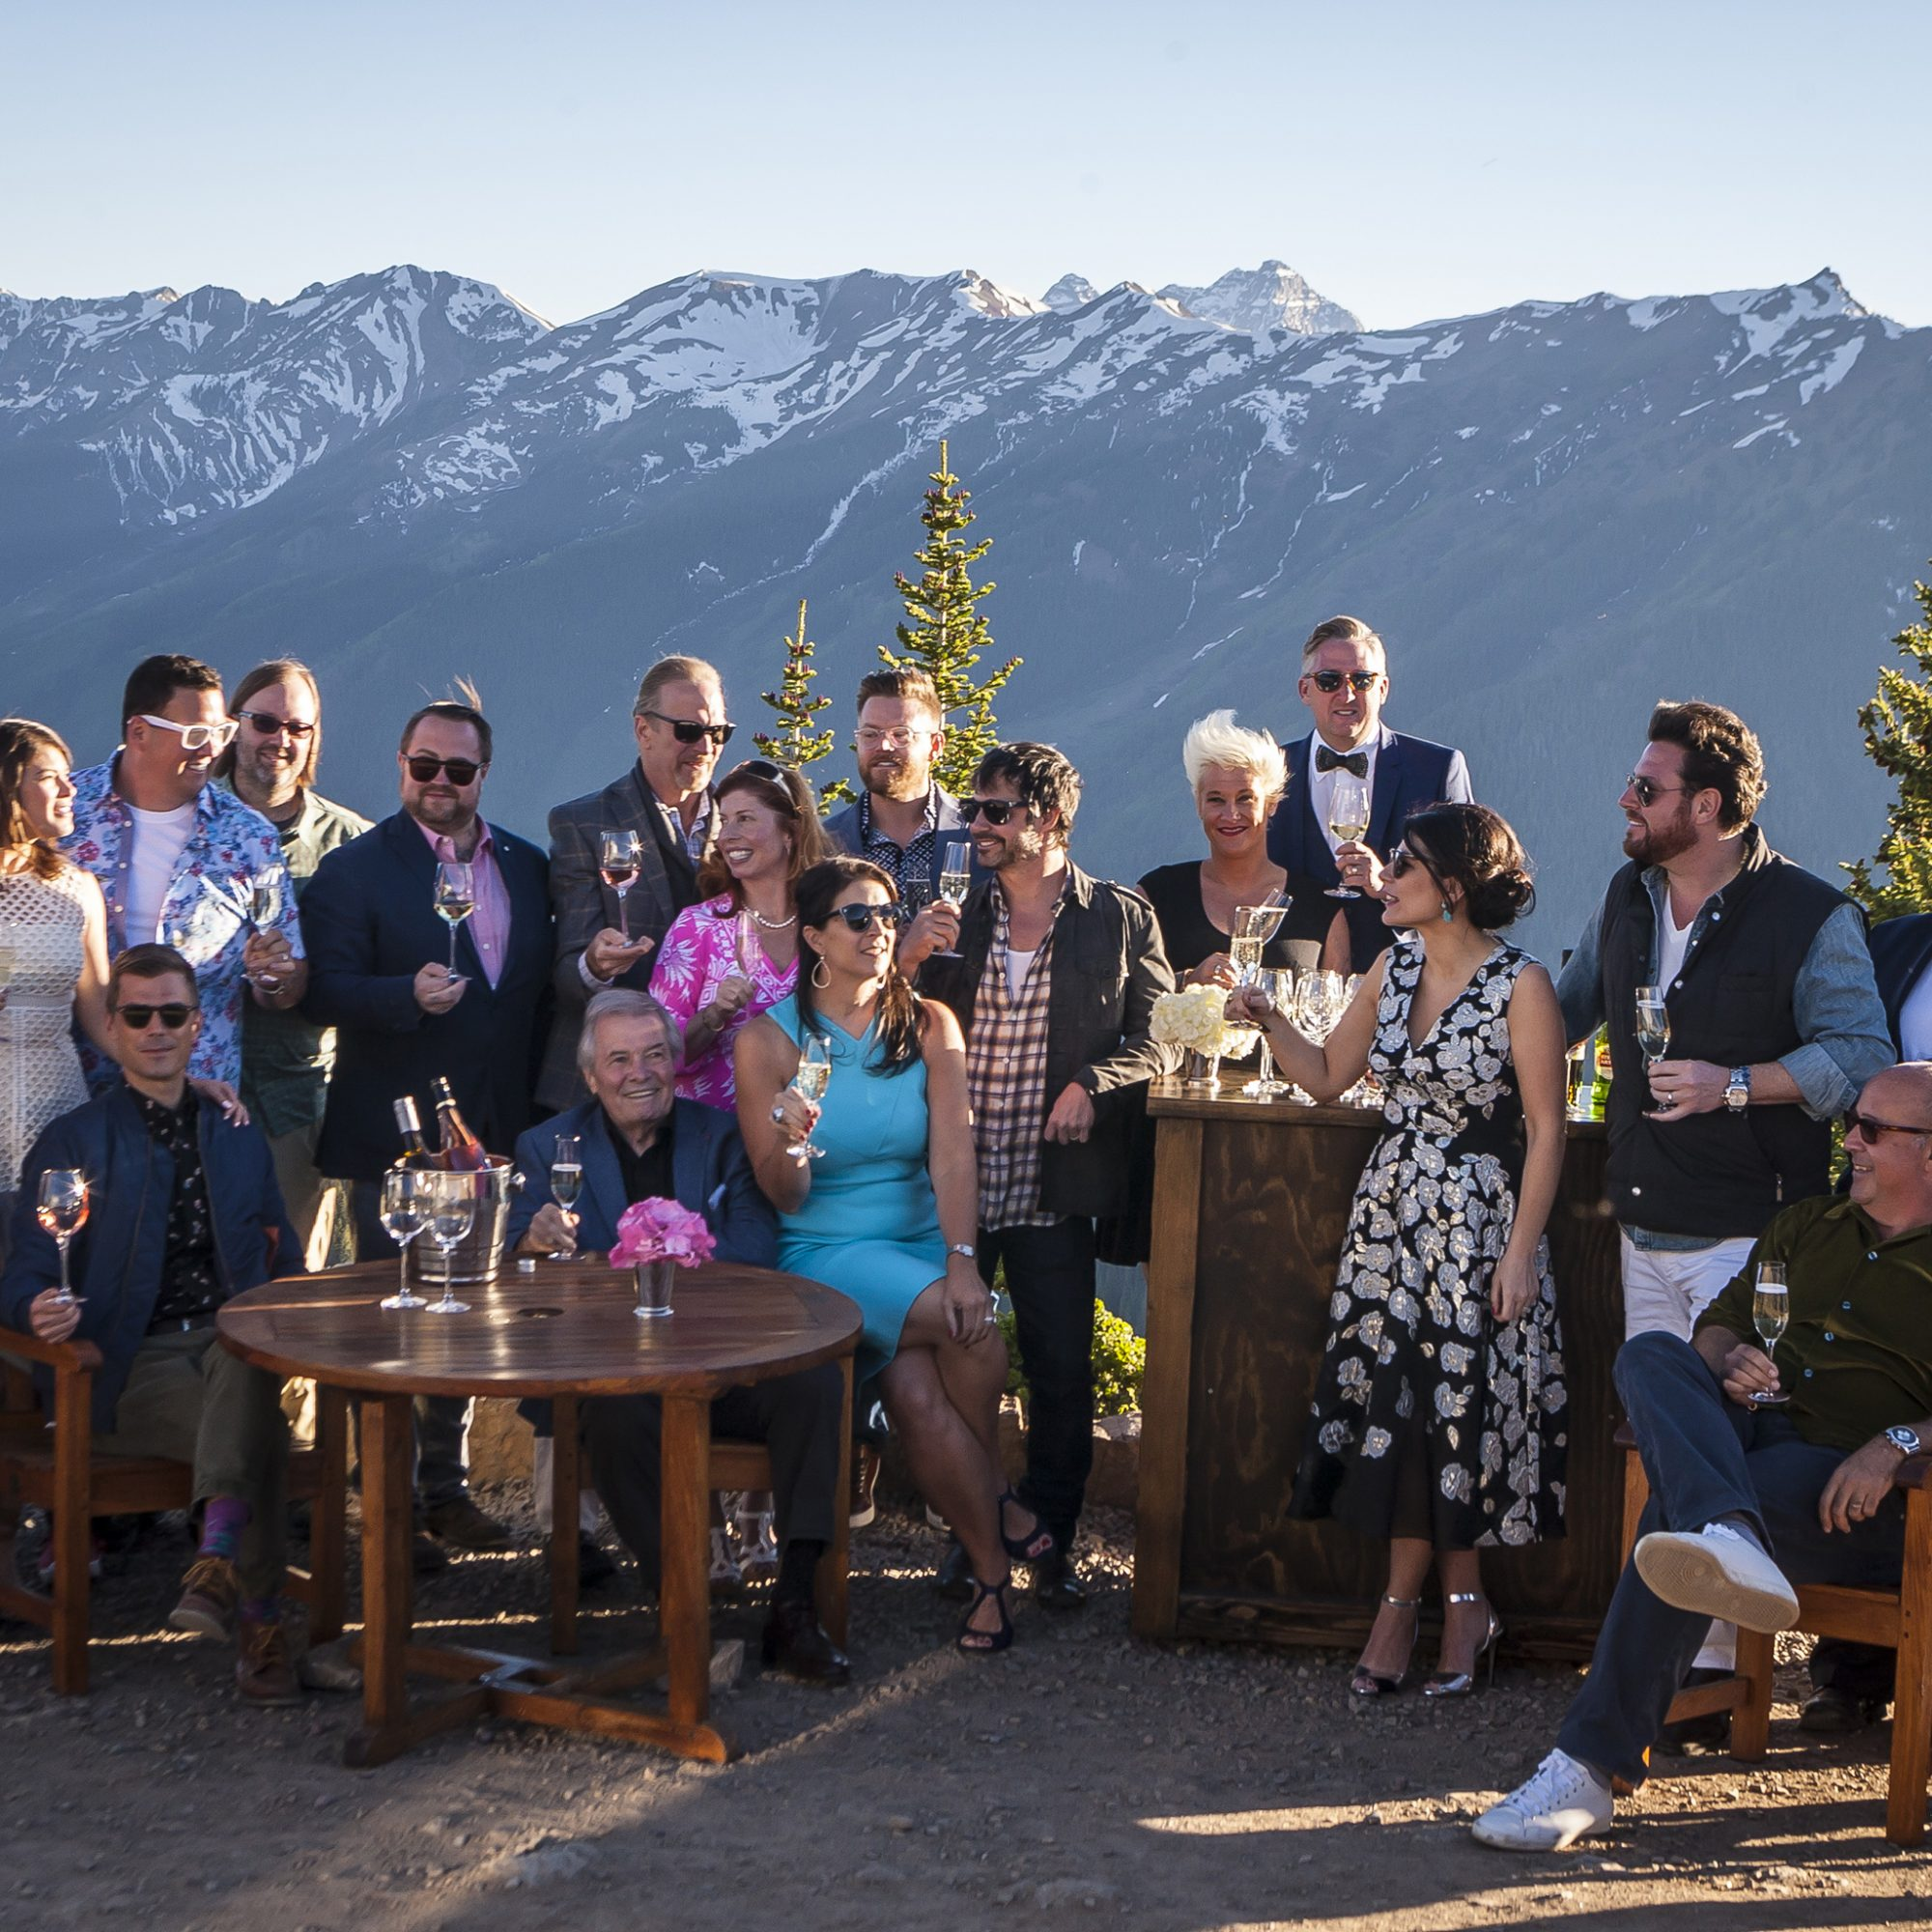 aspen-group-shot-fwx